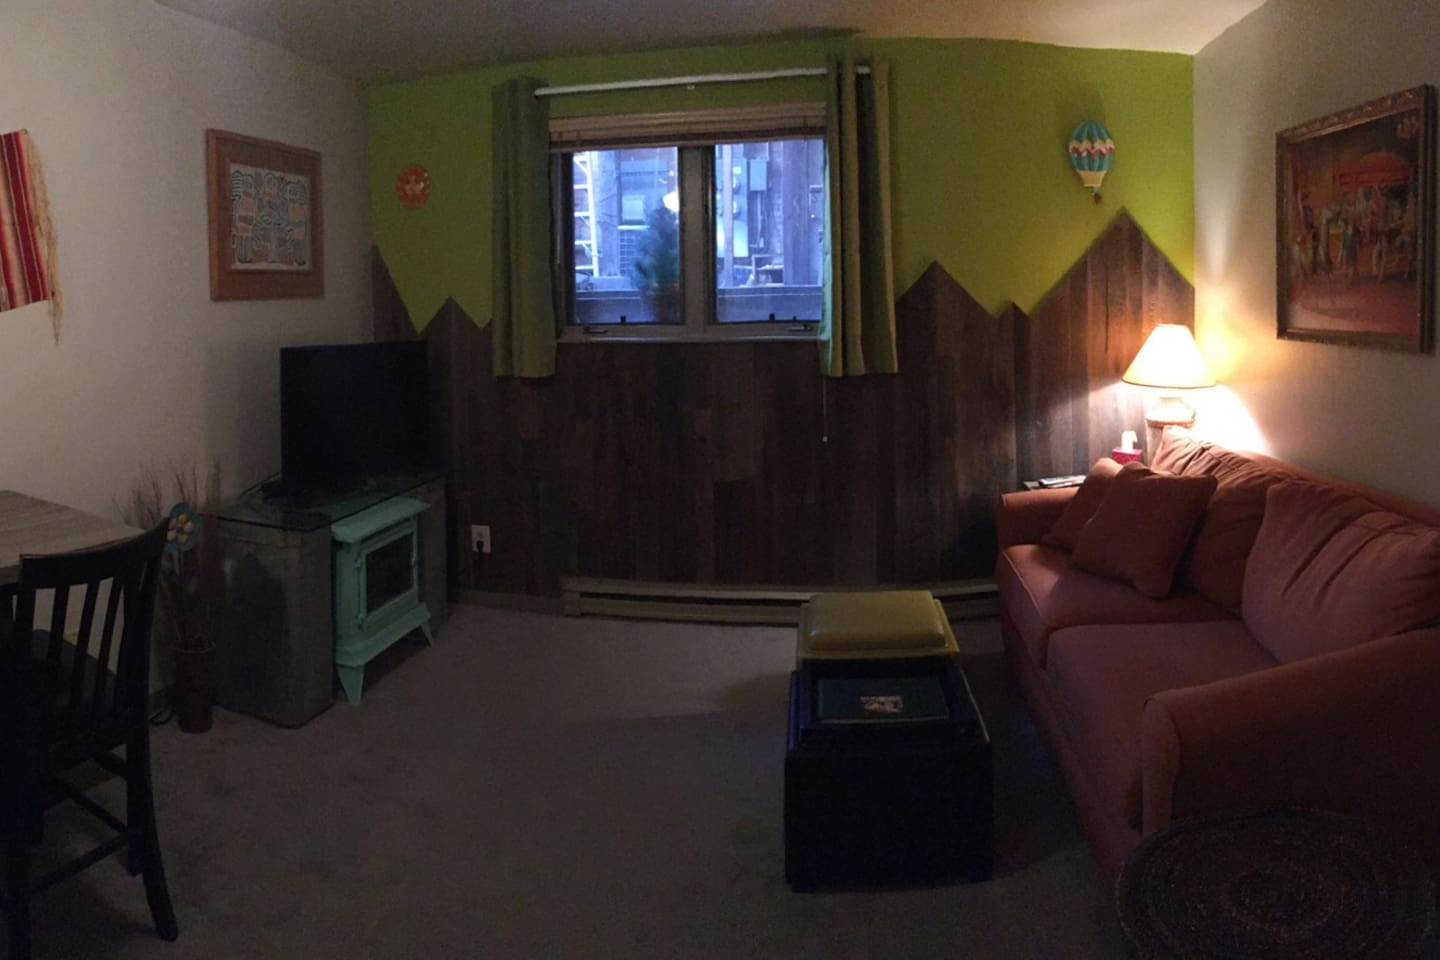 1 Bedroom Condo just off Main Ave in Downtown Durango